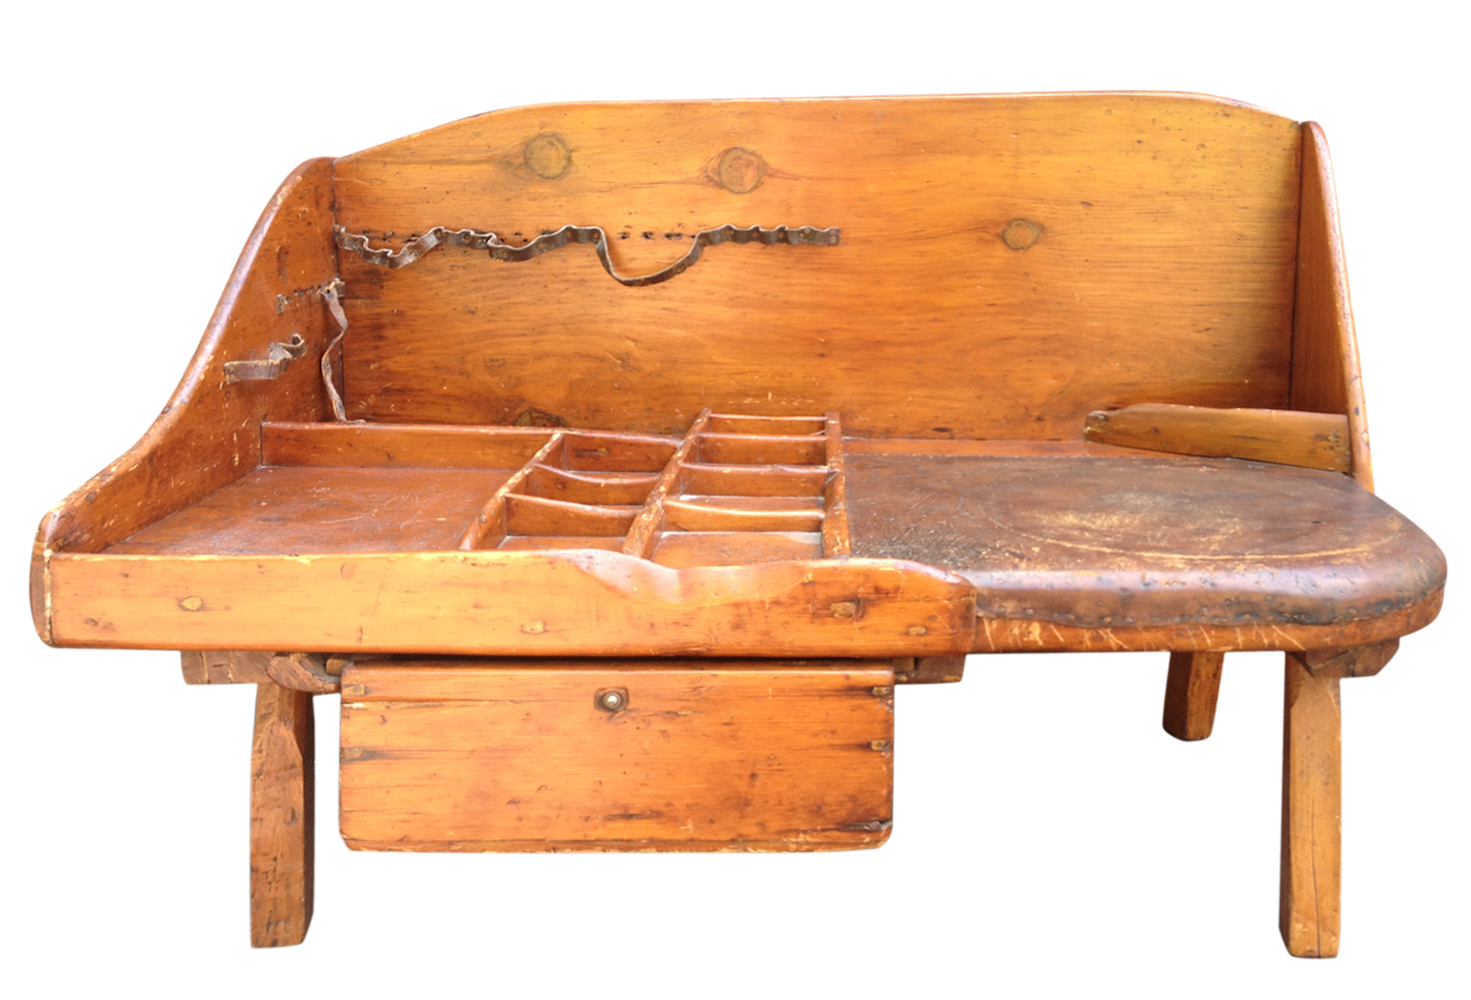 Antique Primitive Cobbler\'s Bench with Leather Seat   Omero Home